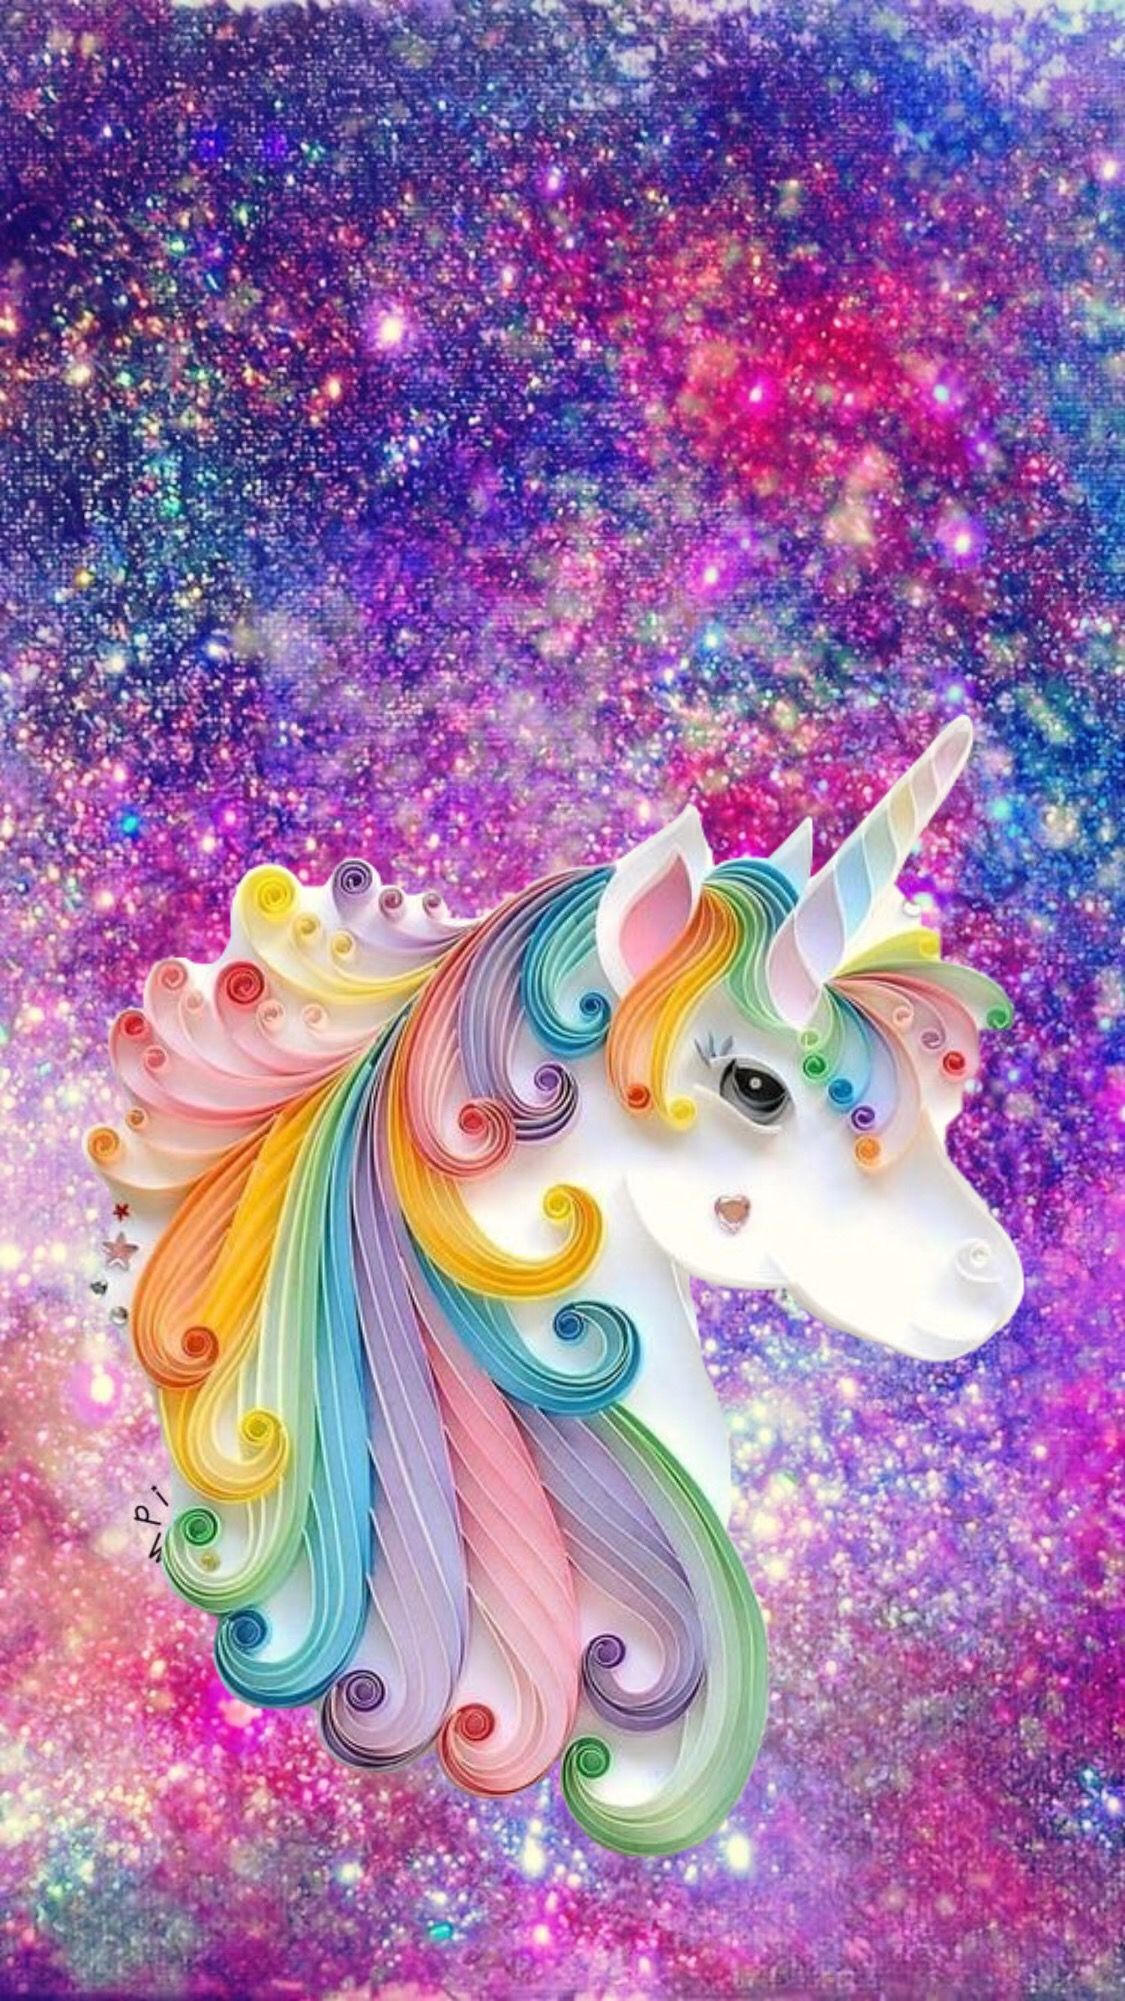 Unicorn With Sparkle Background With Images Unicorn Painting